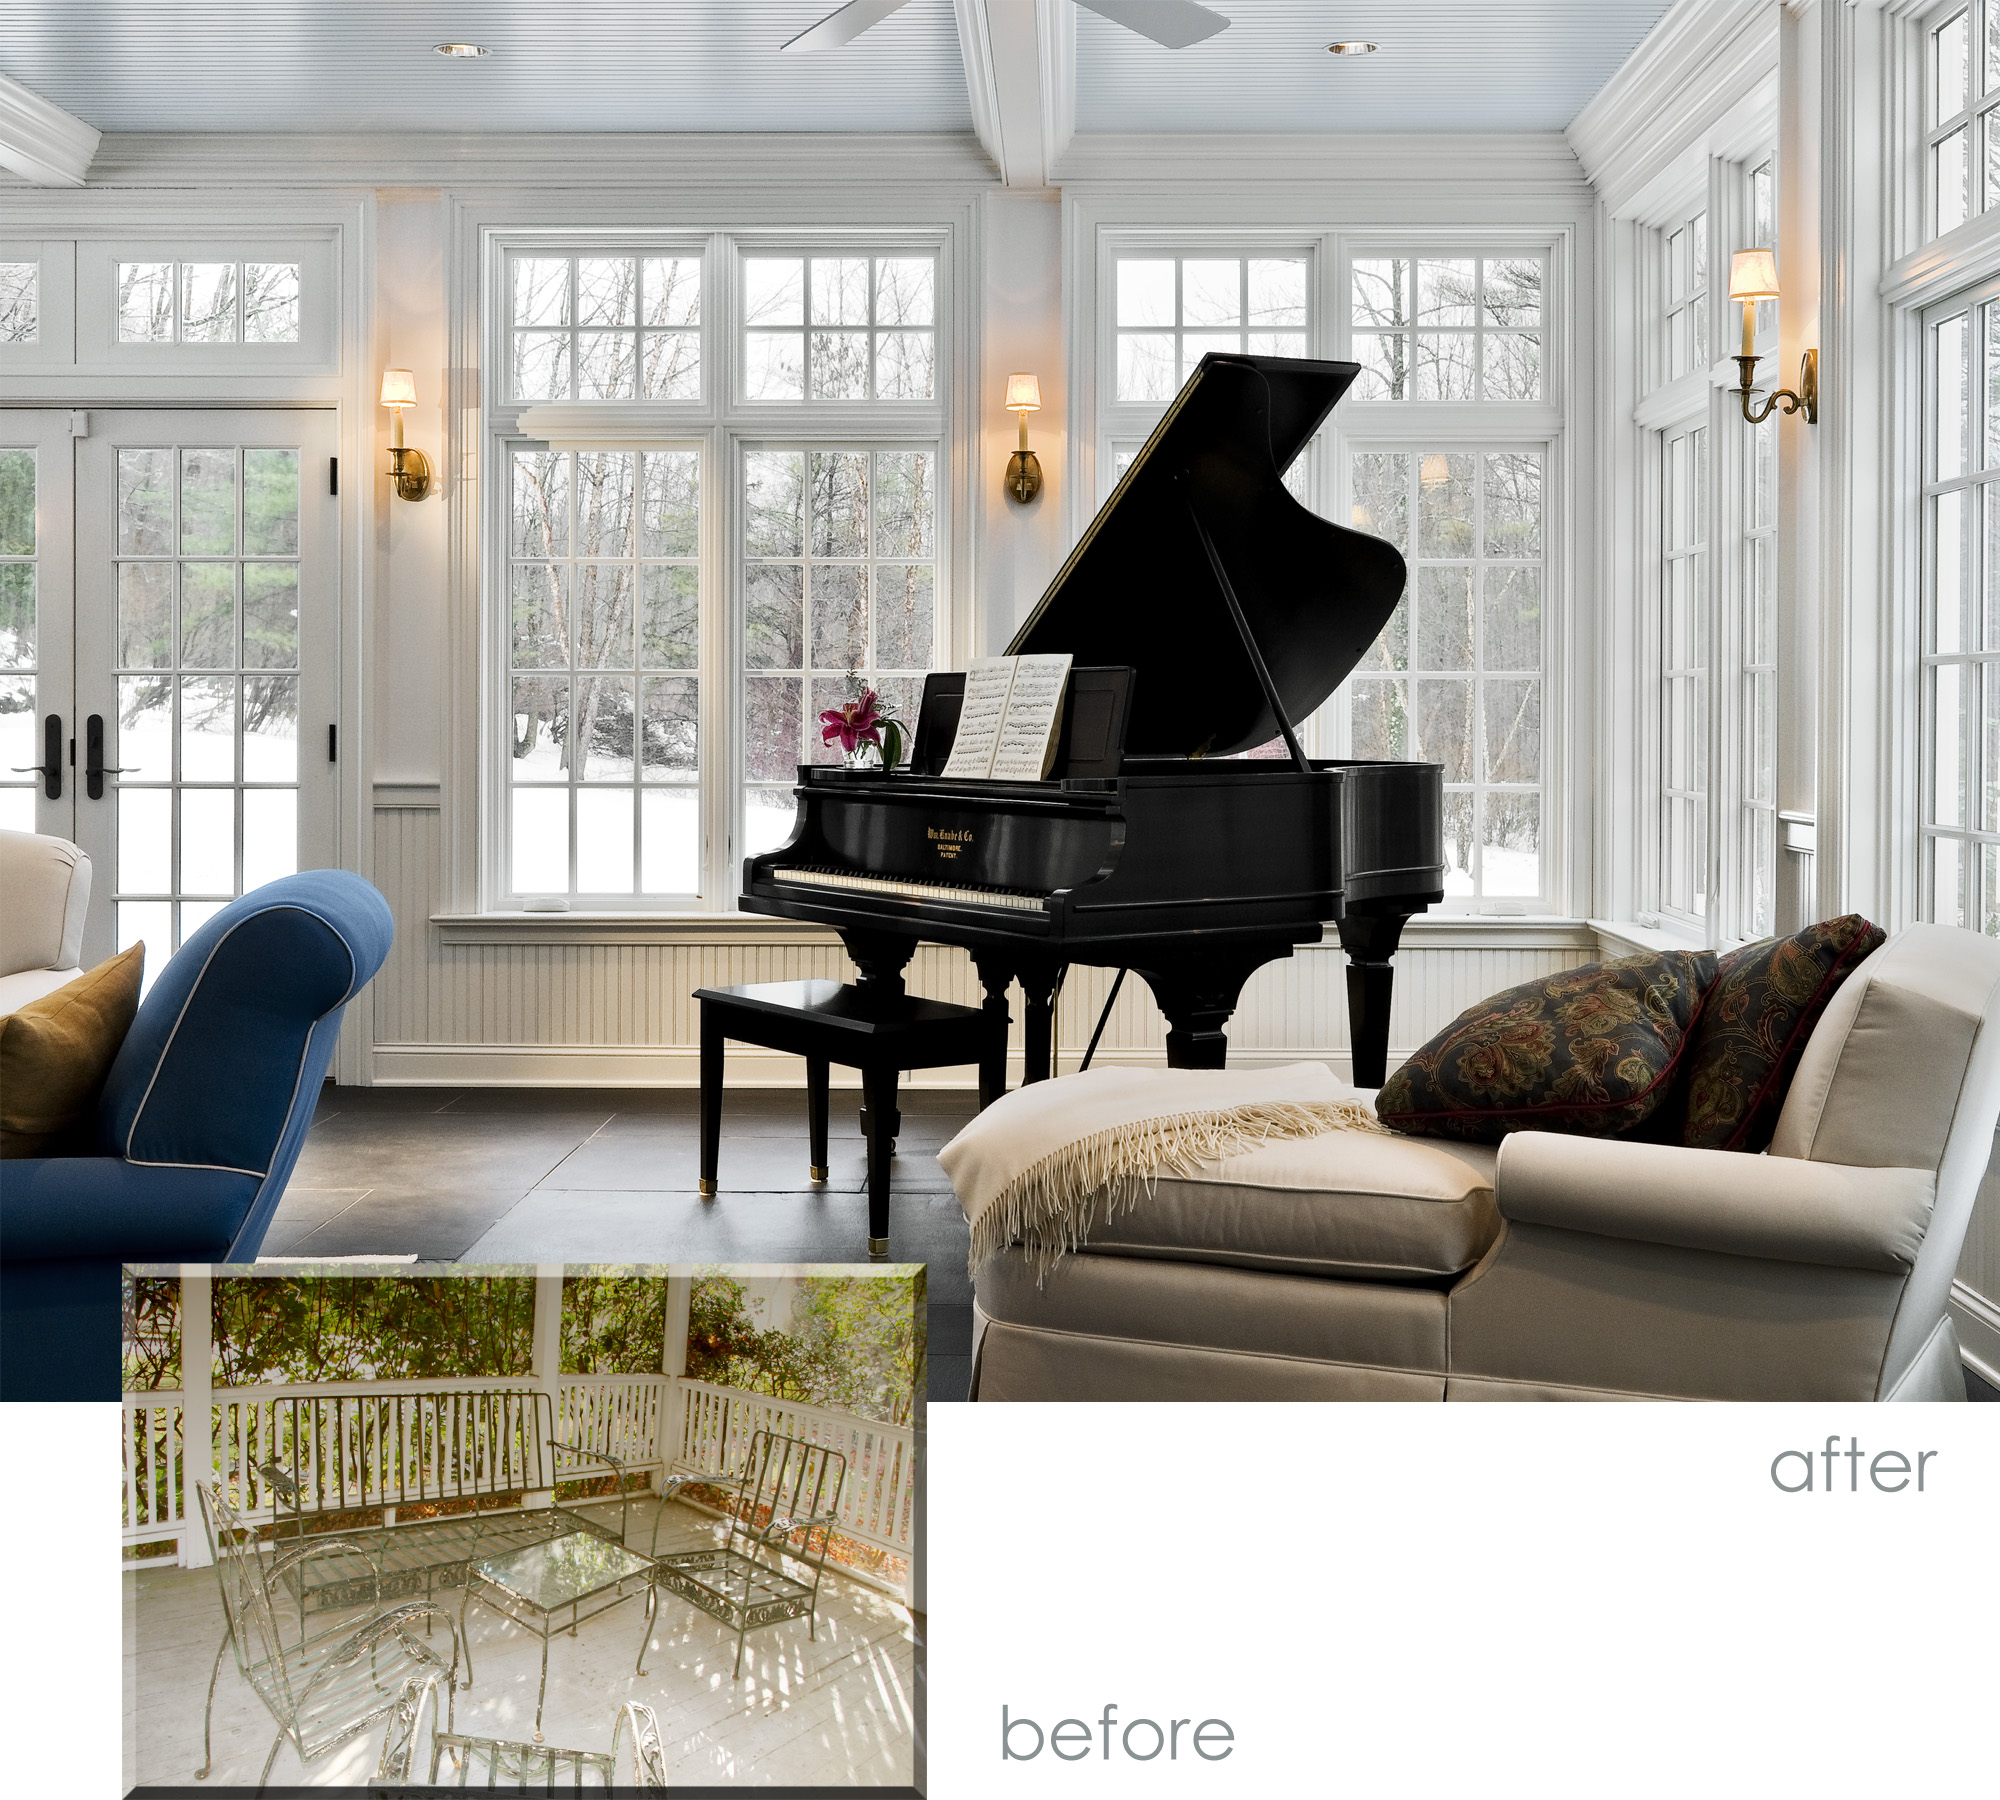 Sun Room Before and After